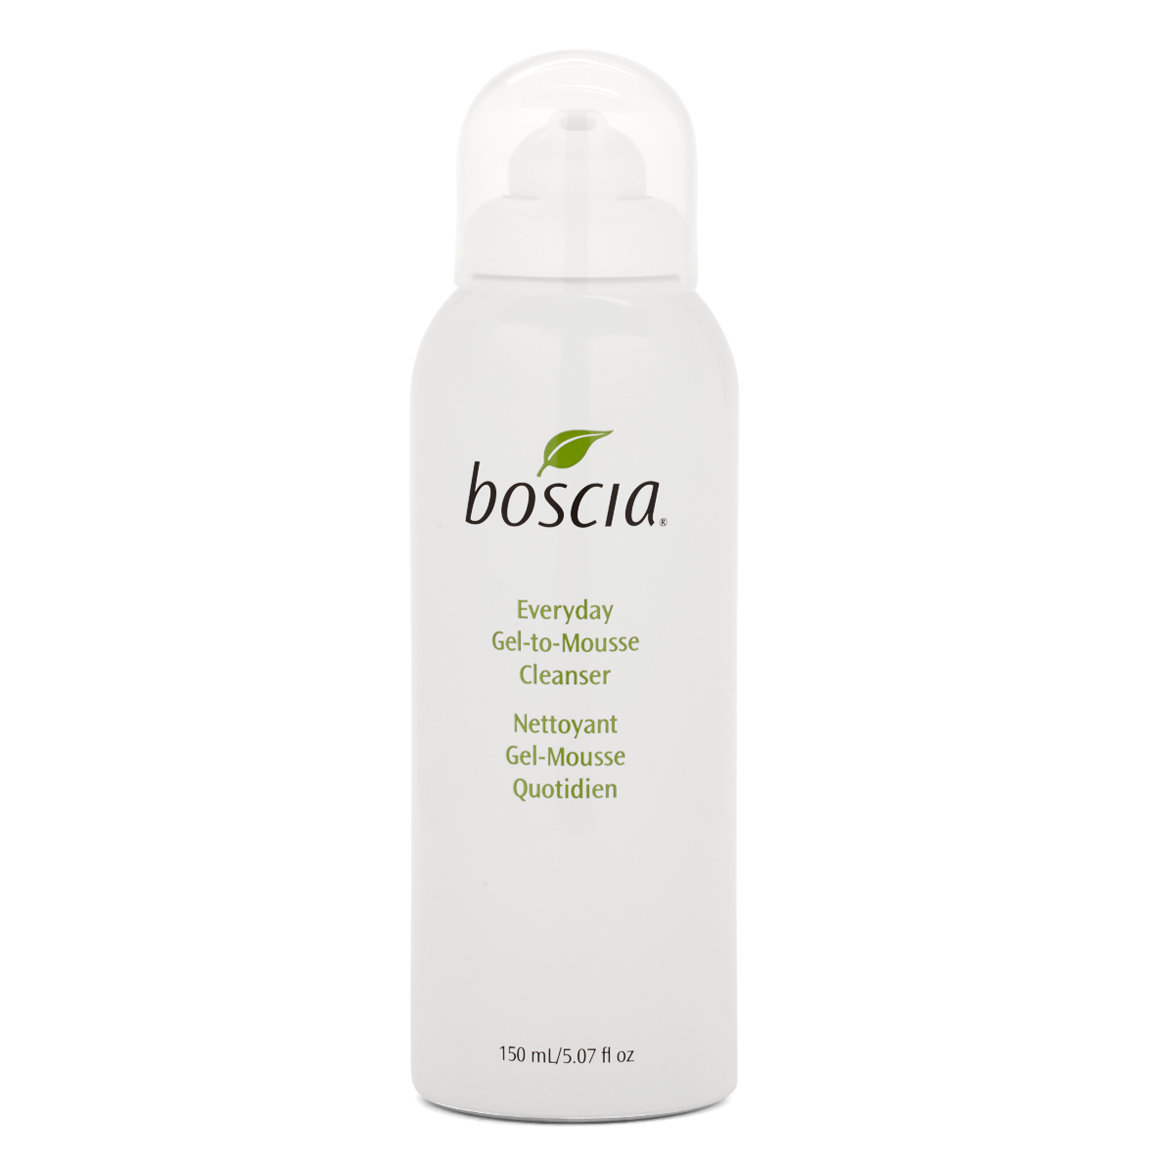 boscia Everyday Gel-to-Mousse Cleanser product swatch.